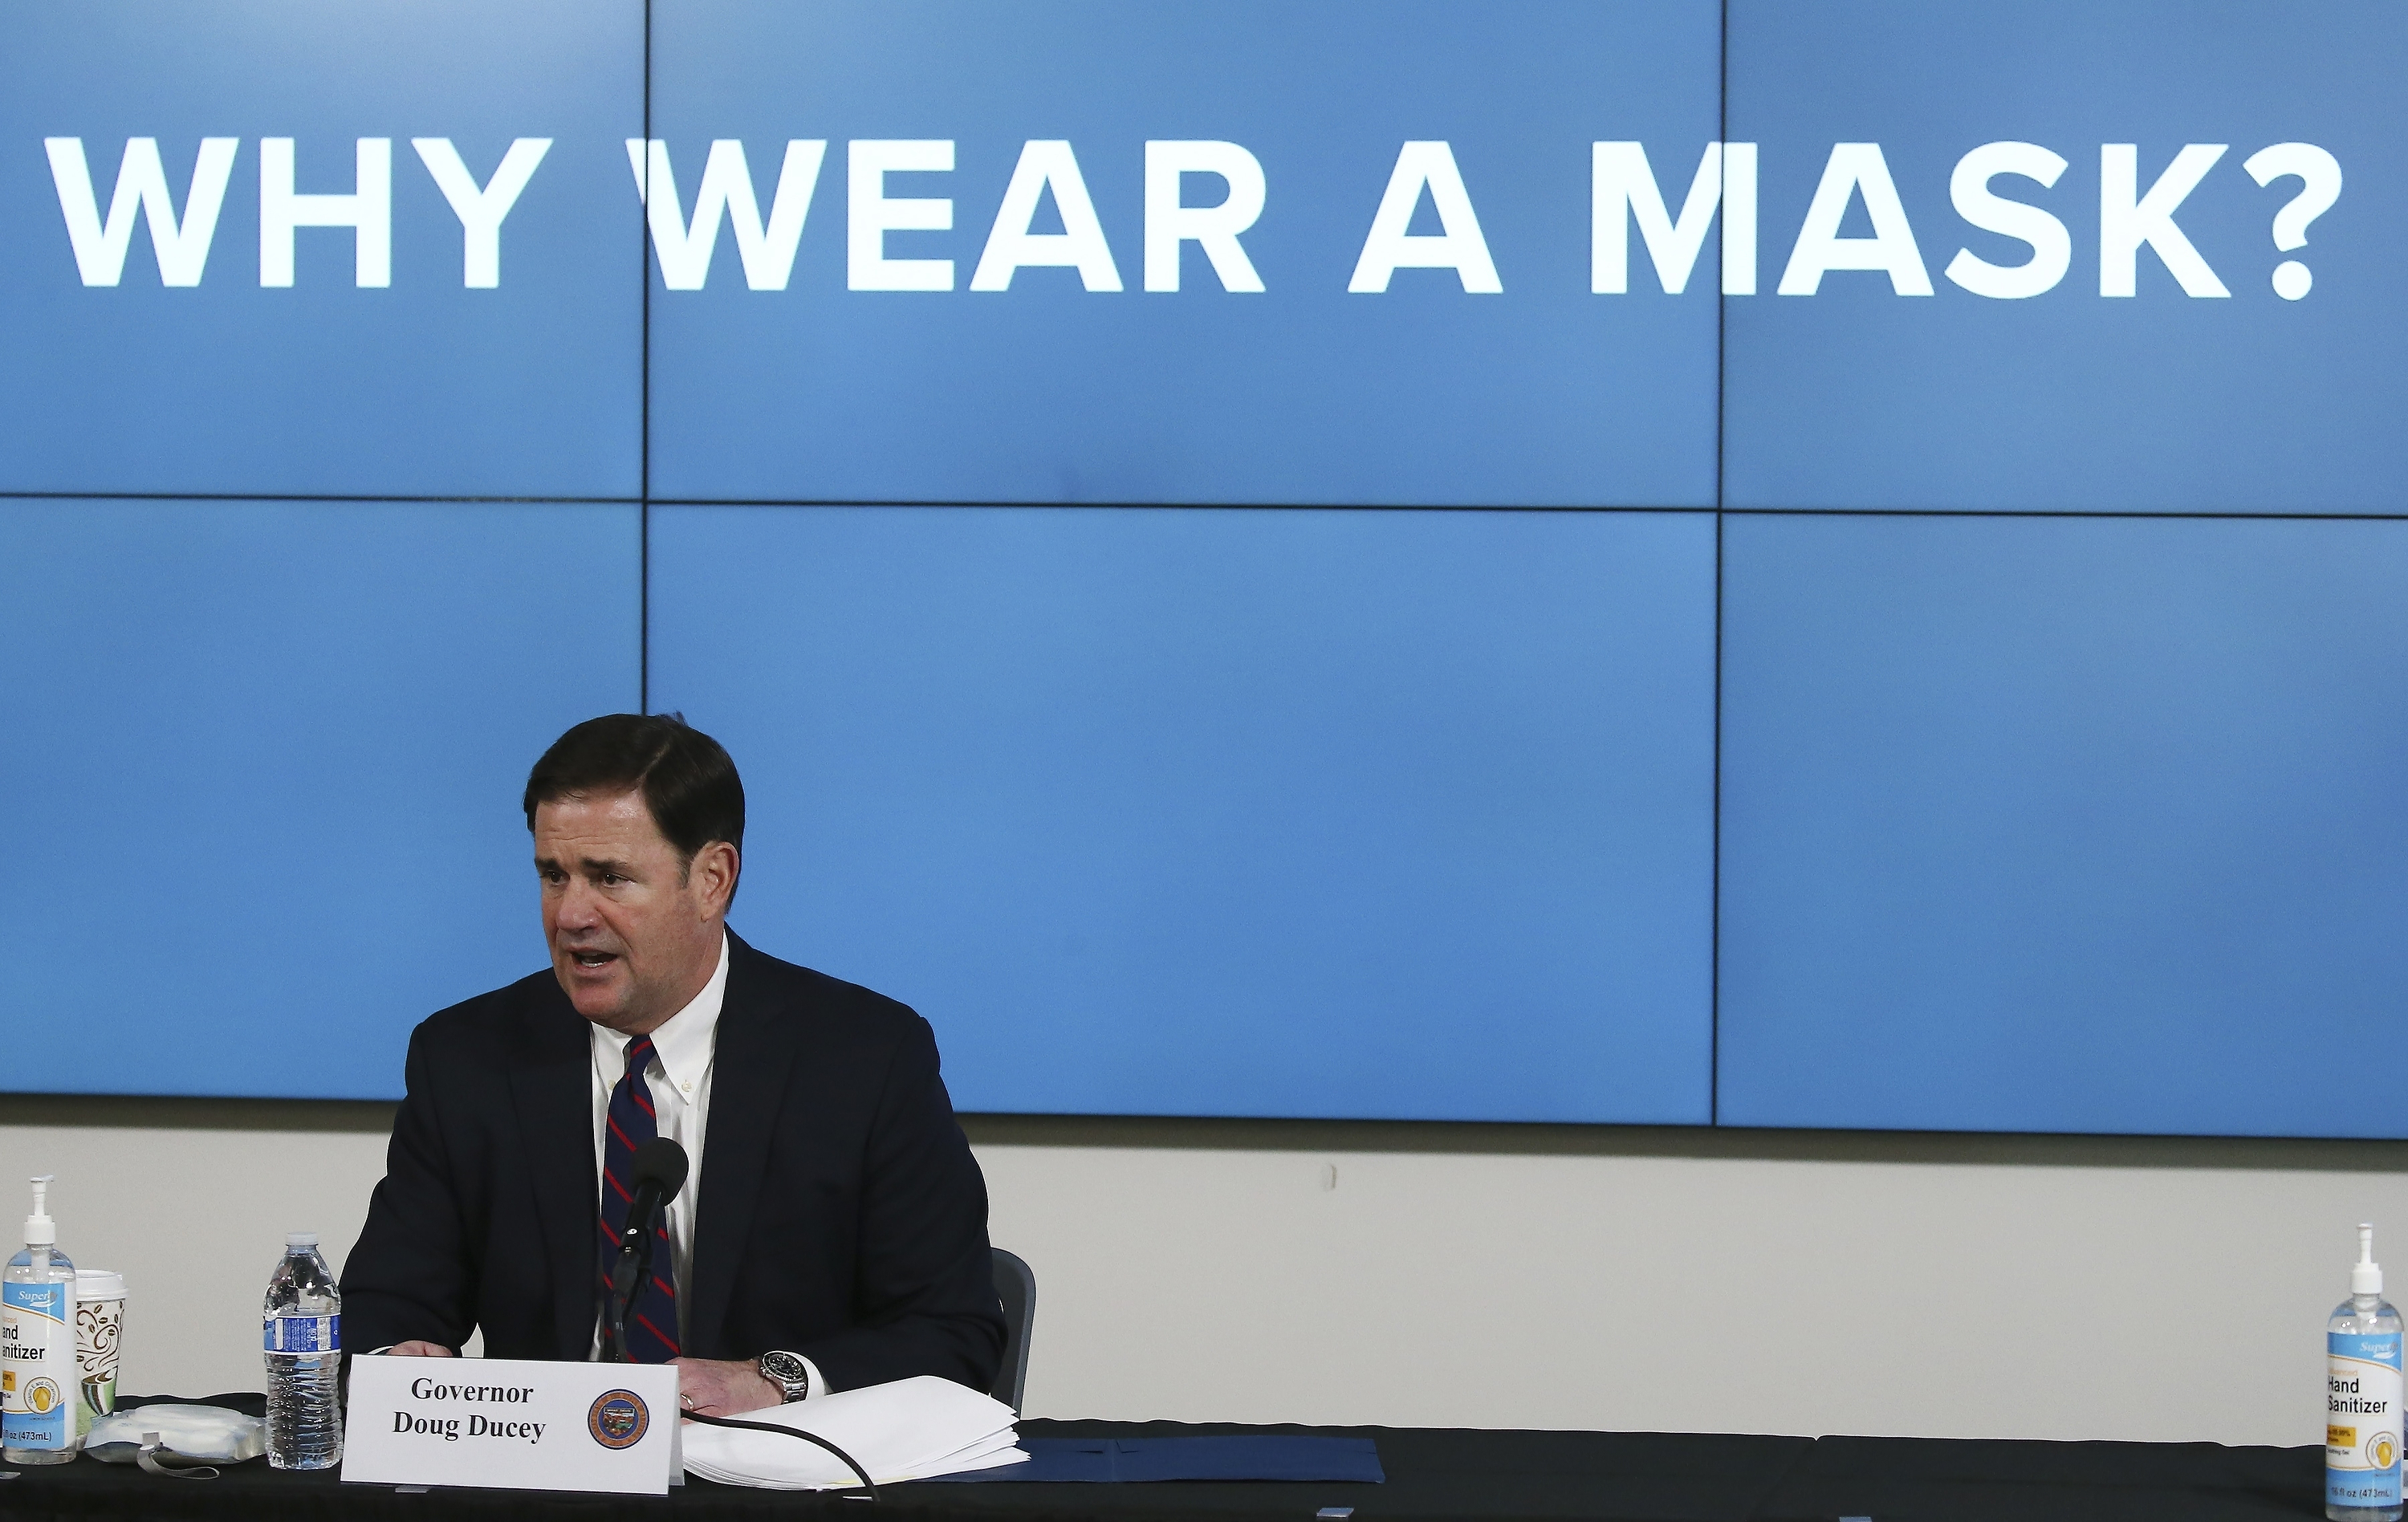 Arizona Republican Gov. Doug Ducey speaks about the latest coronavirus update in Arizona and benefits of wearing a mask during a news conference in Phoenix on July 9, 2020.